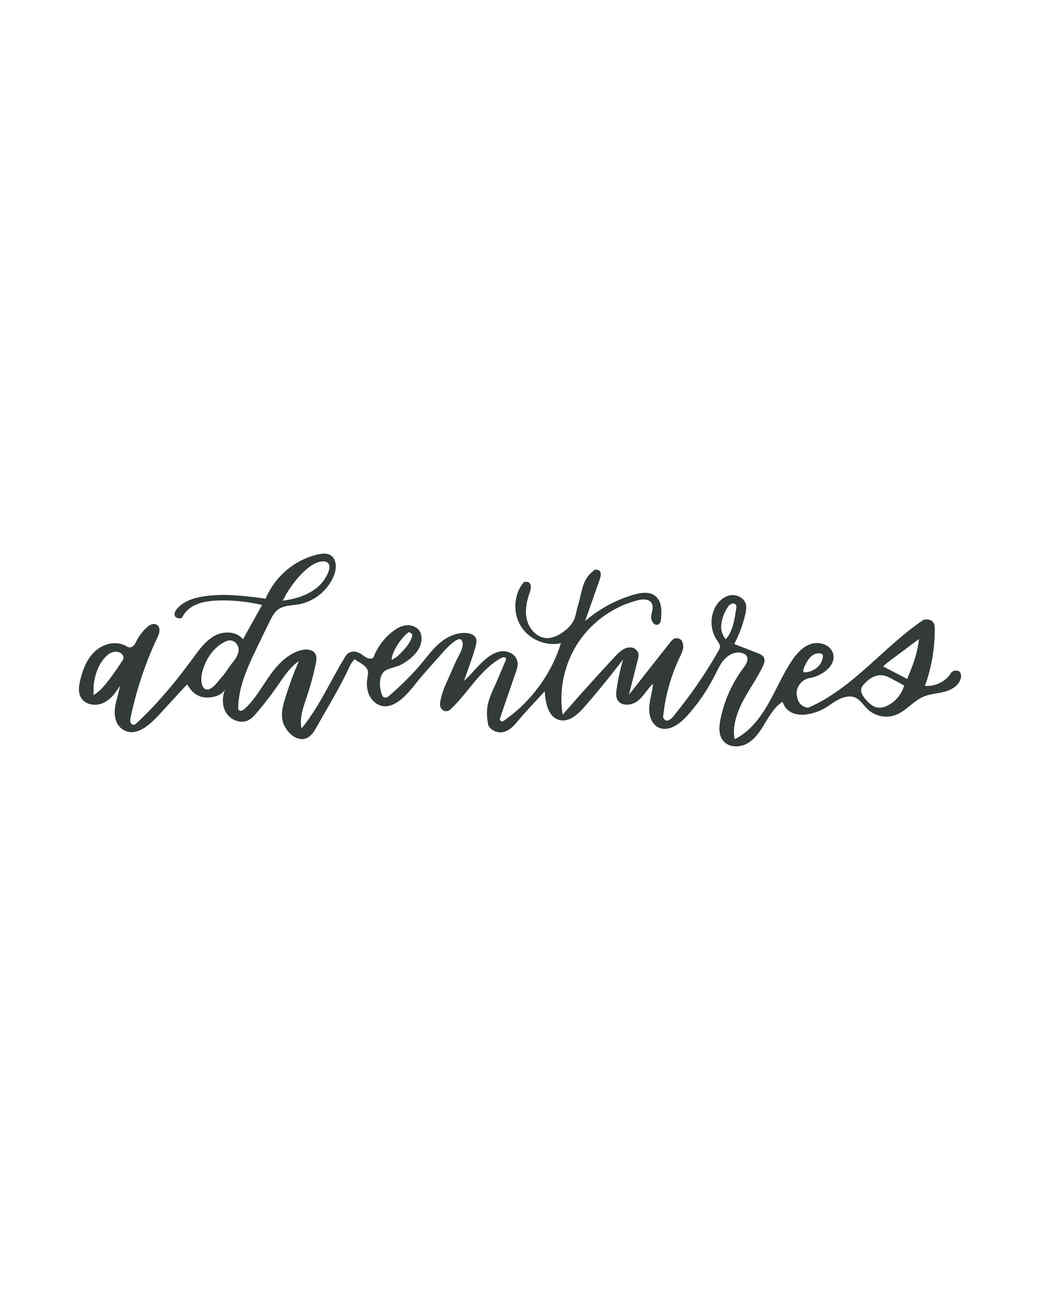 """adventures"" in calligraphy"